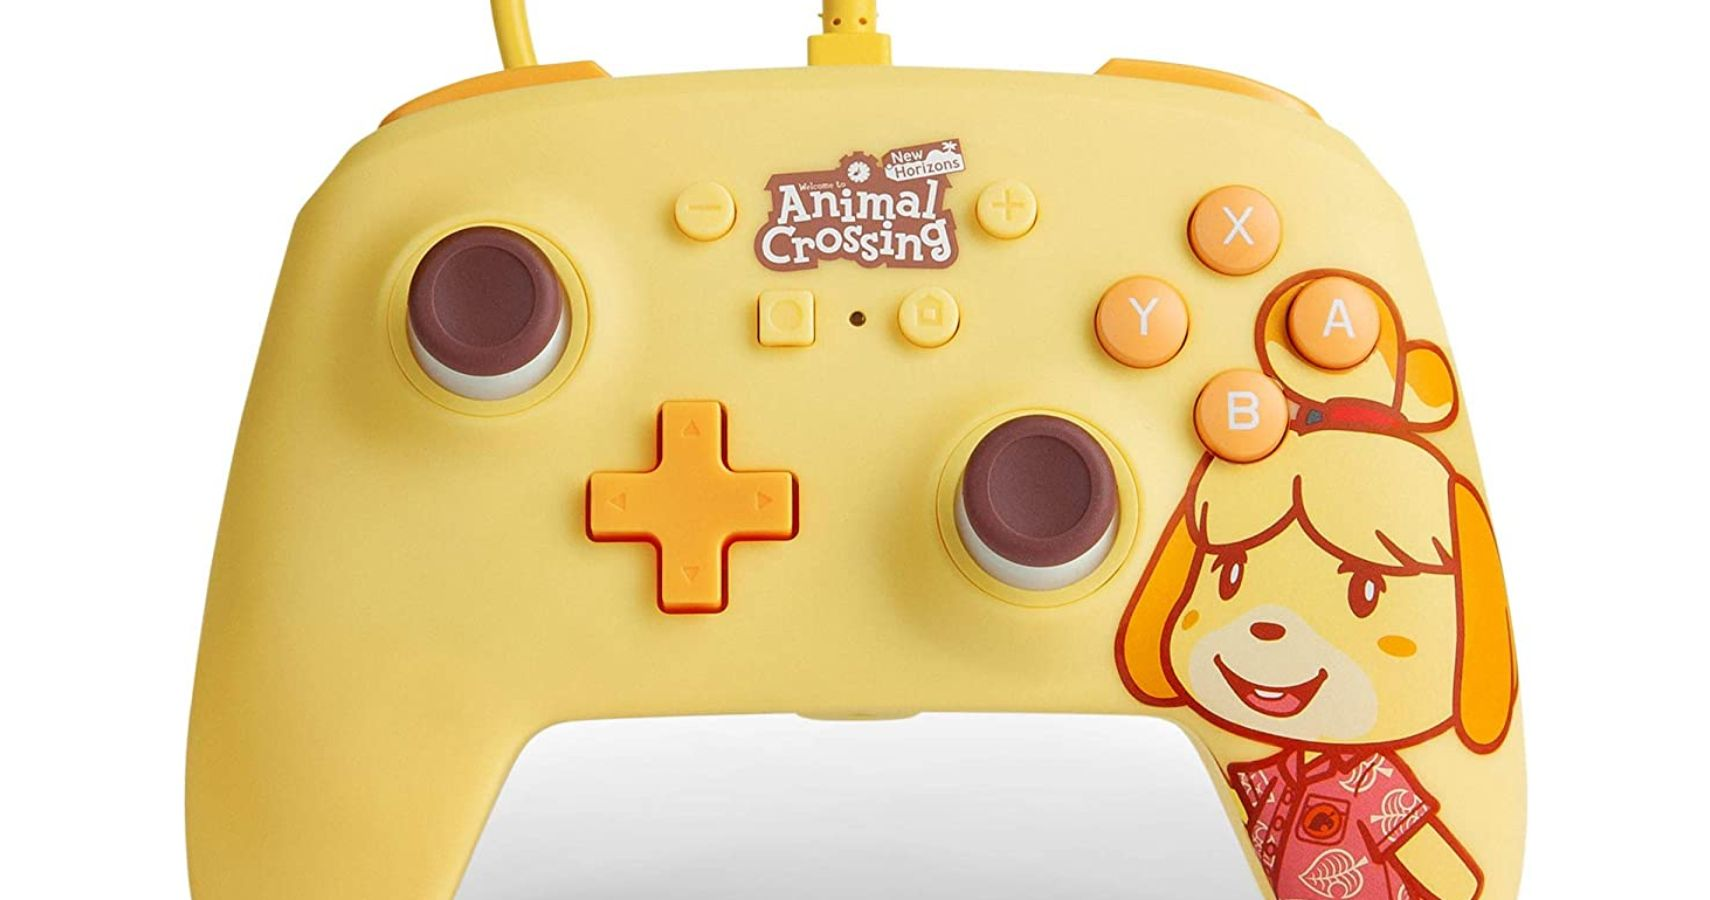 Pre-Order These Adorable New Animal Crossing: New Horizons Nintendo Switch Controllers